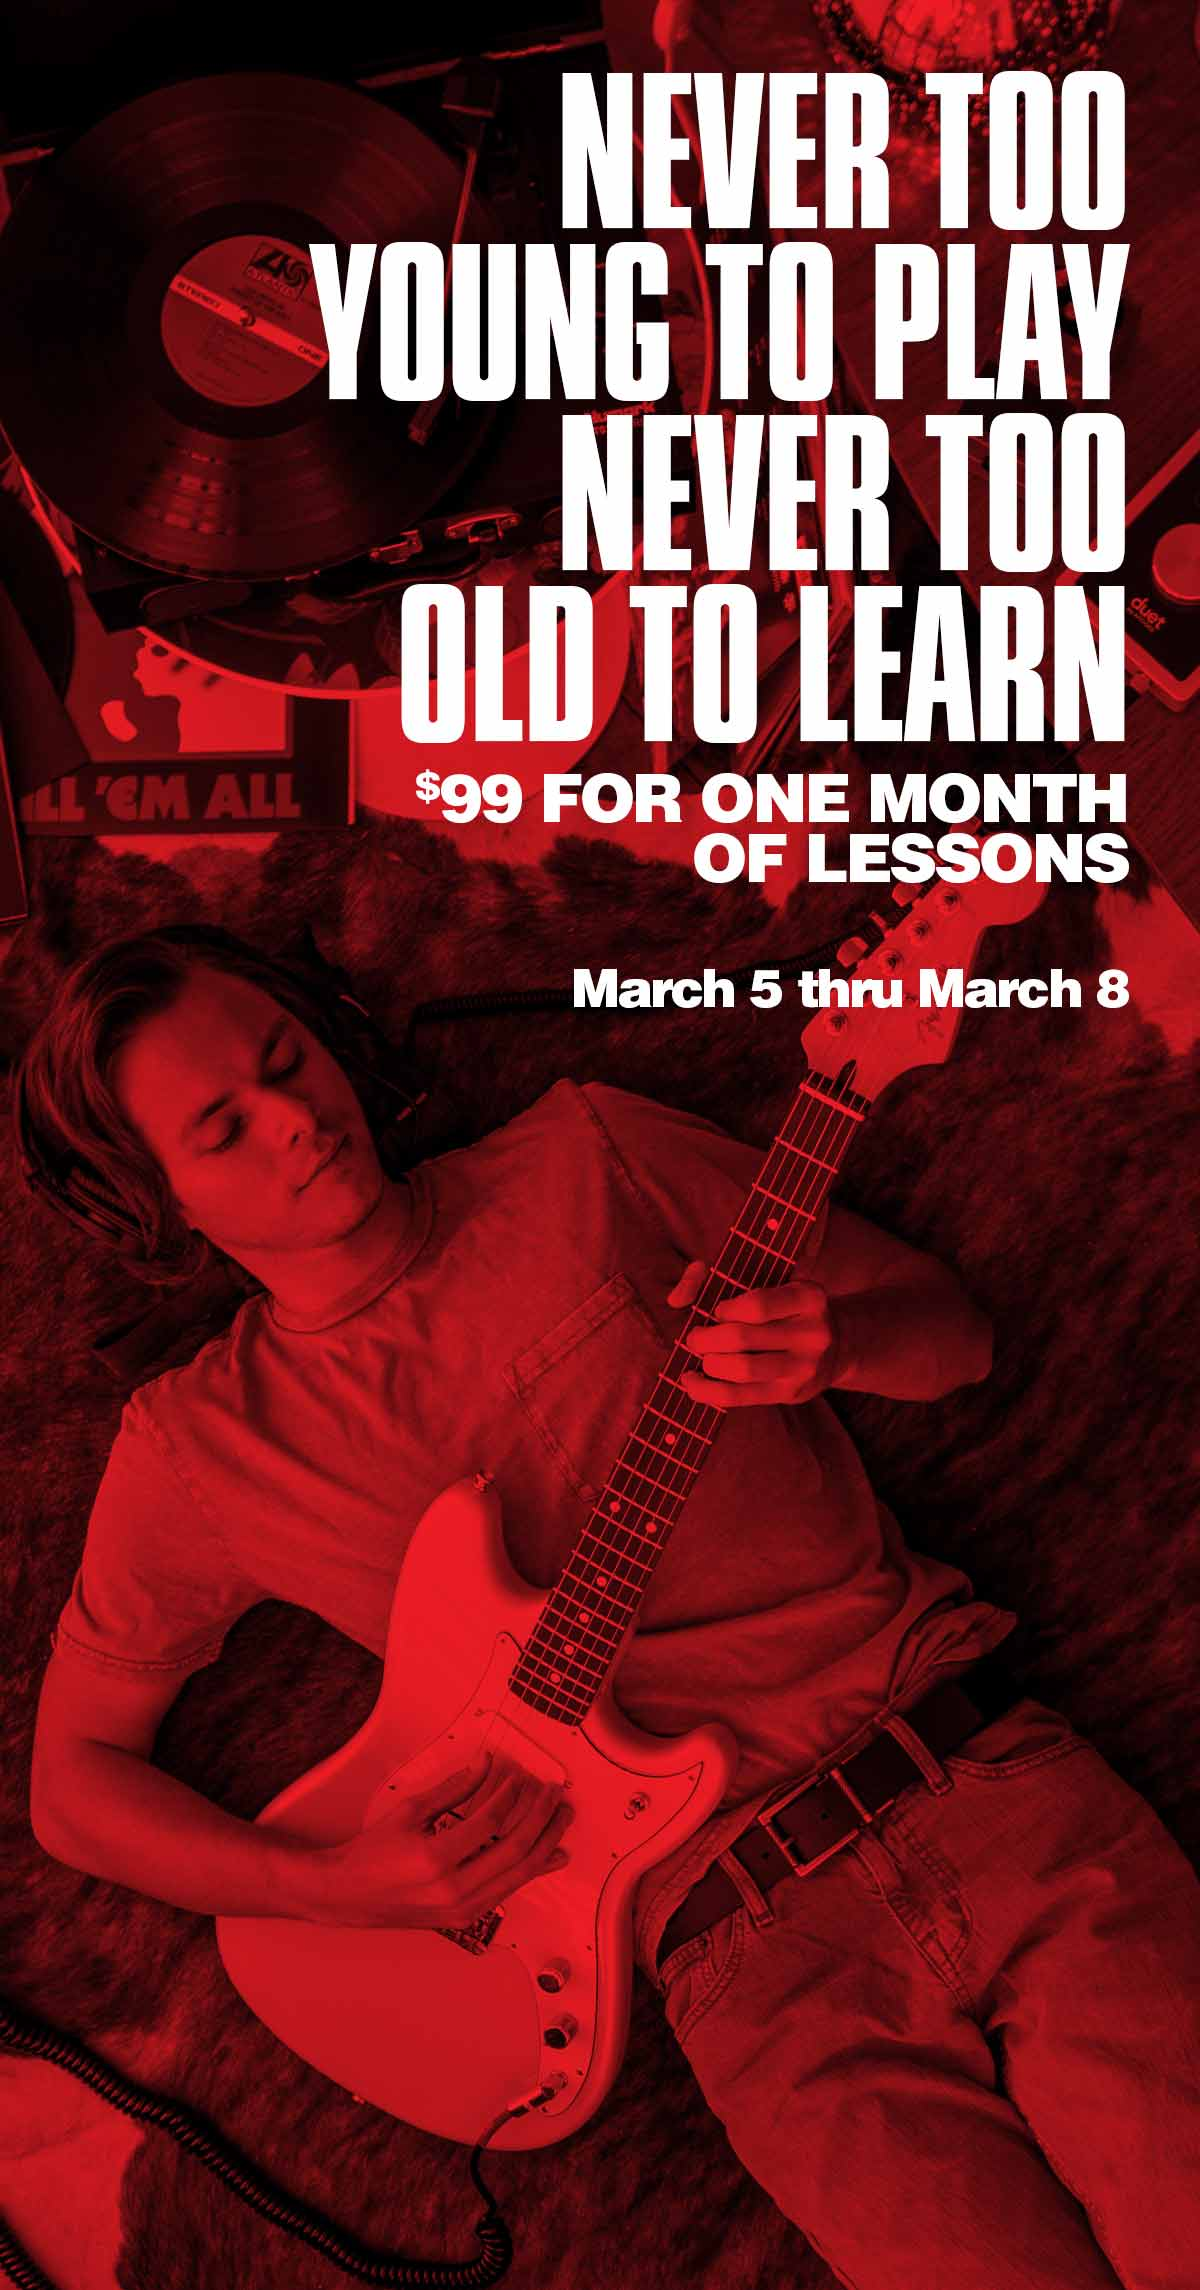 NEVER TOO YOUNG TO PLAY